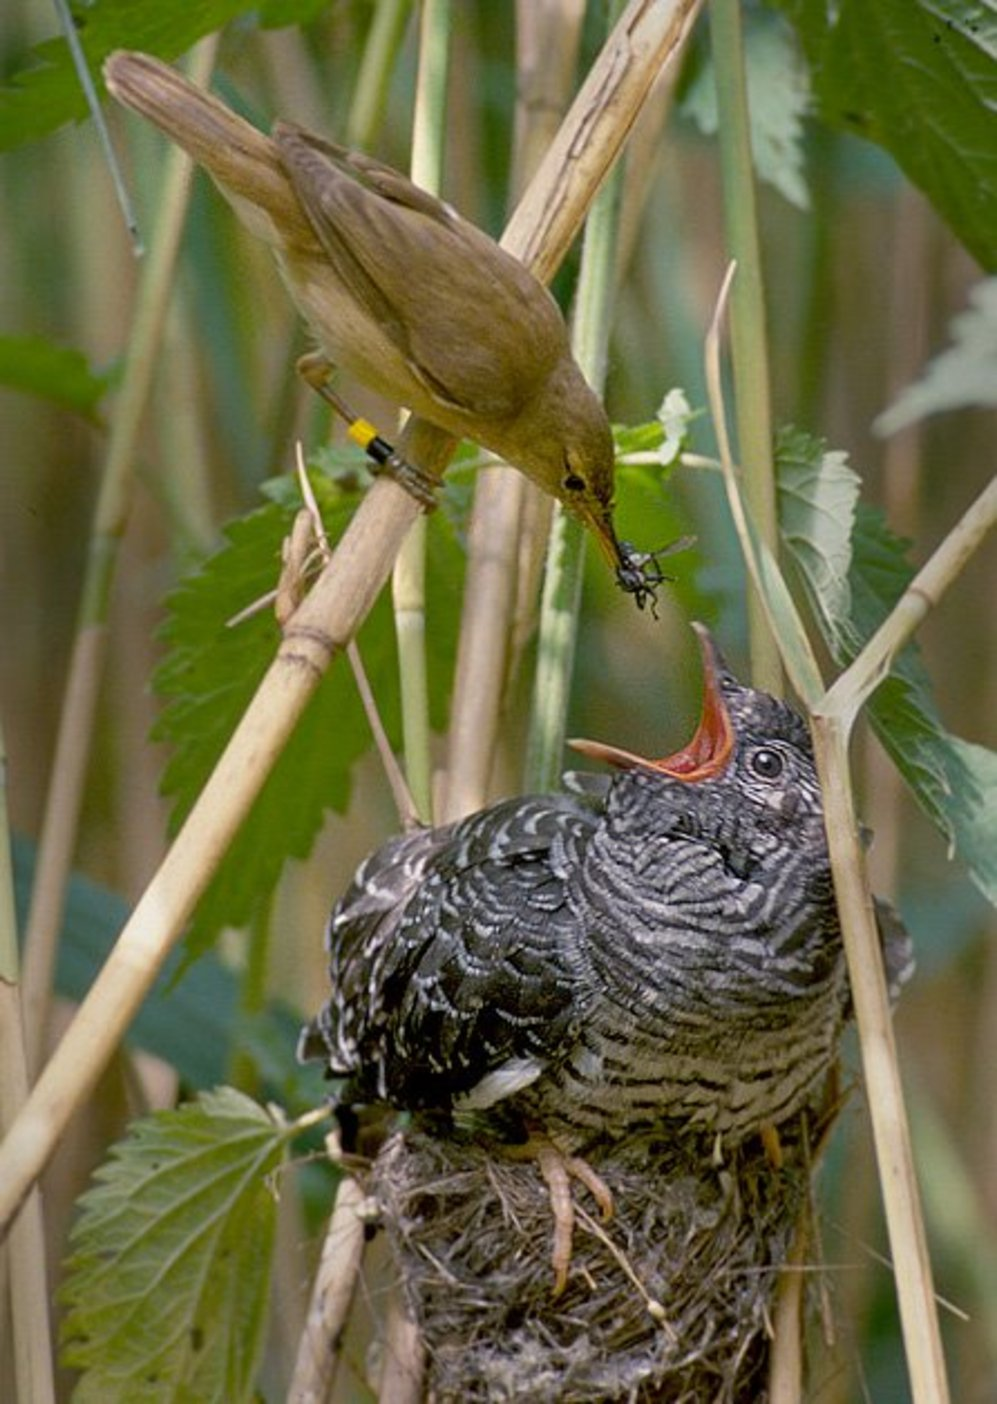 cuckoo calls sound like hawks to distract the birds they re preying